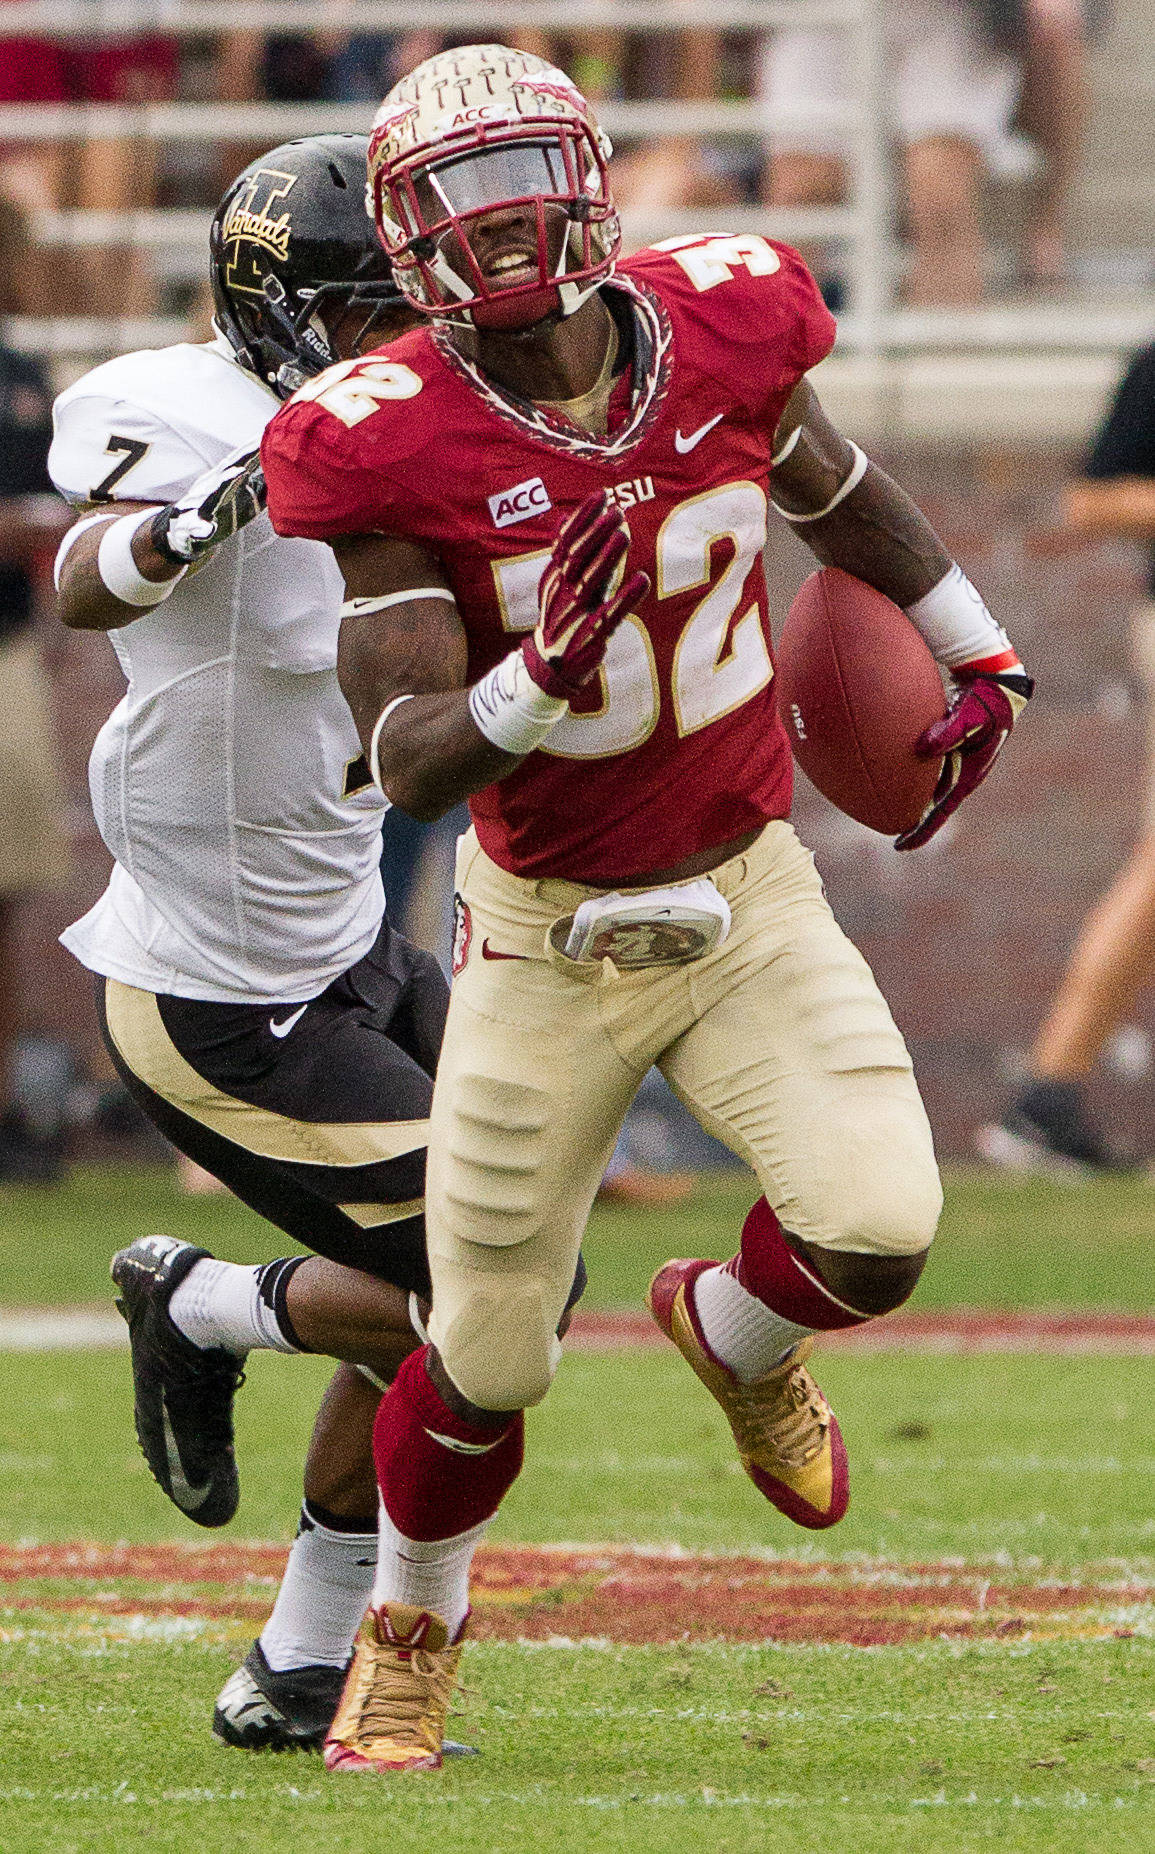 James Wilder, Jr. (32) carries the ball during FSU Football's 80-14 victory over Idaho in Tallahassee, Fla on Saturday, November 23, 2013. Photos by Mike Schwarz.